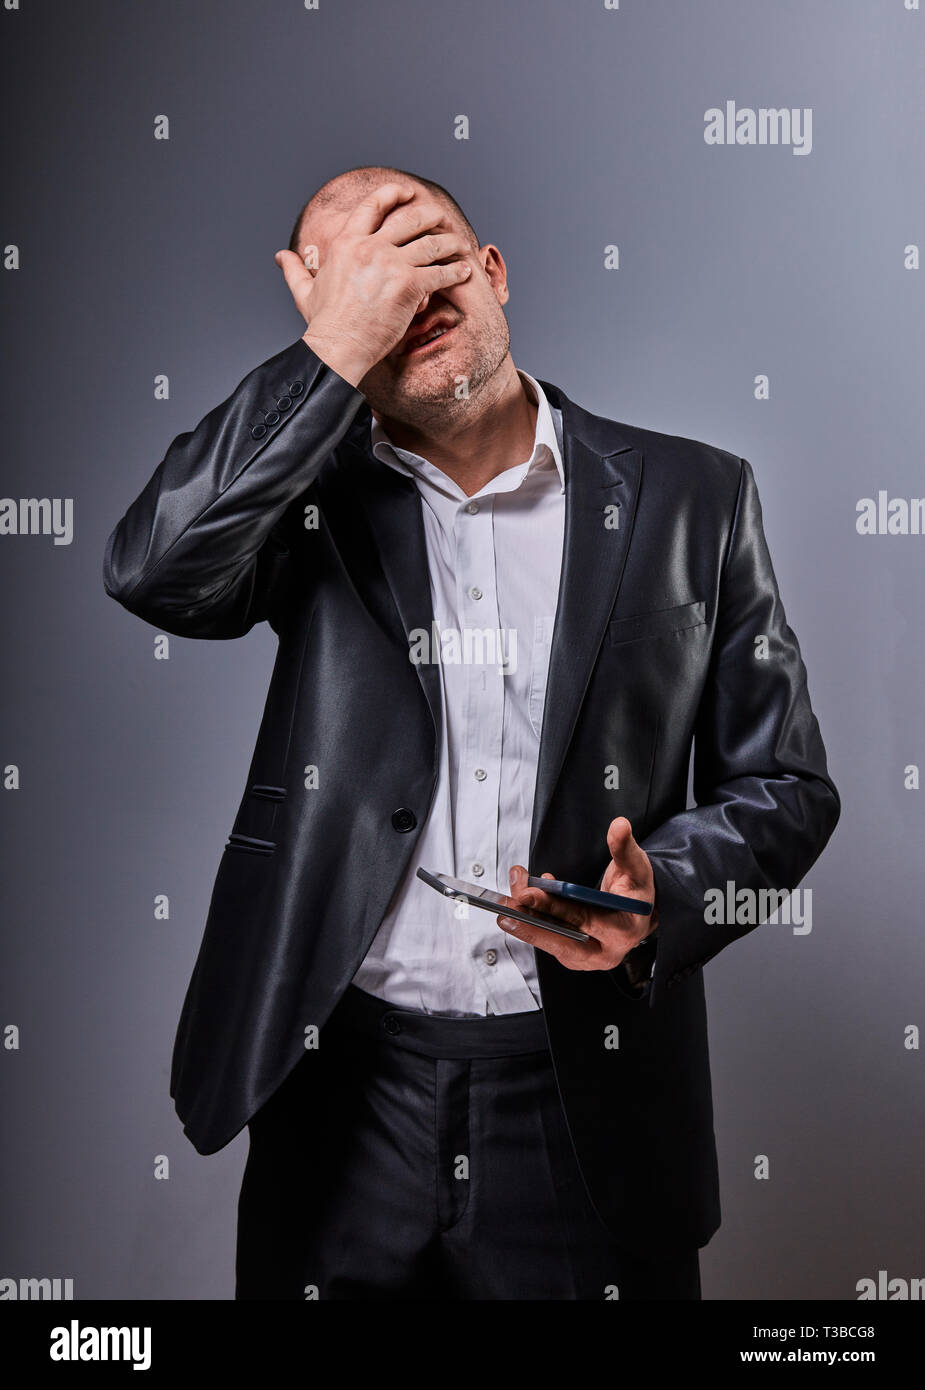 Unhappy stressed depressed business man holding in hand two mobile phones and covering the face the palm in office suit on grey background. Closeup po Stock Photo